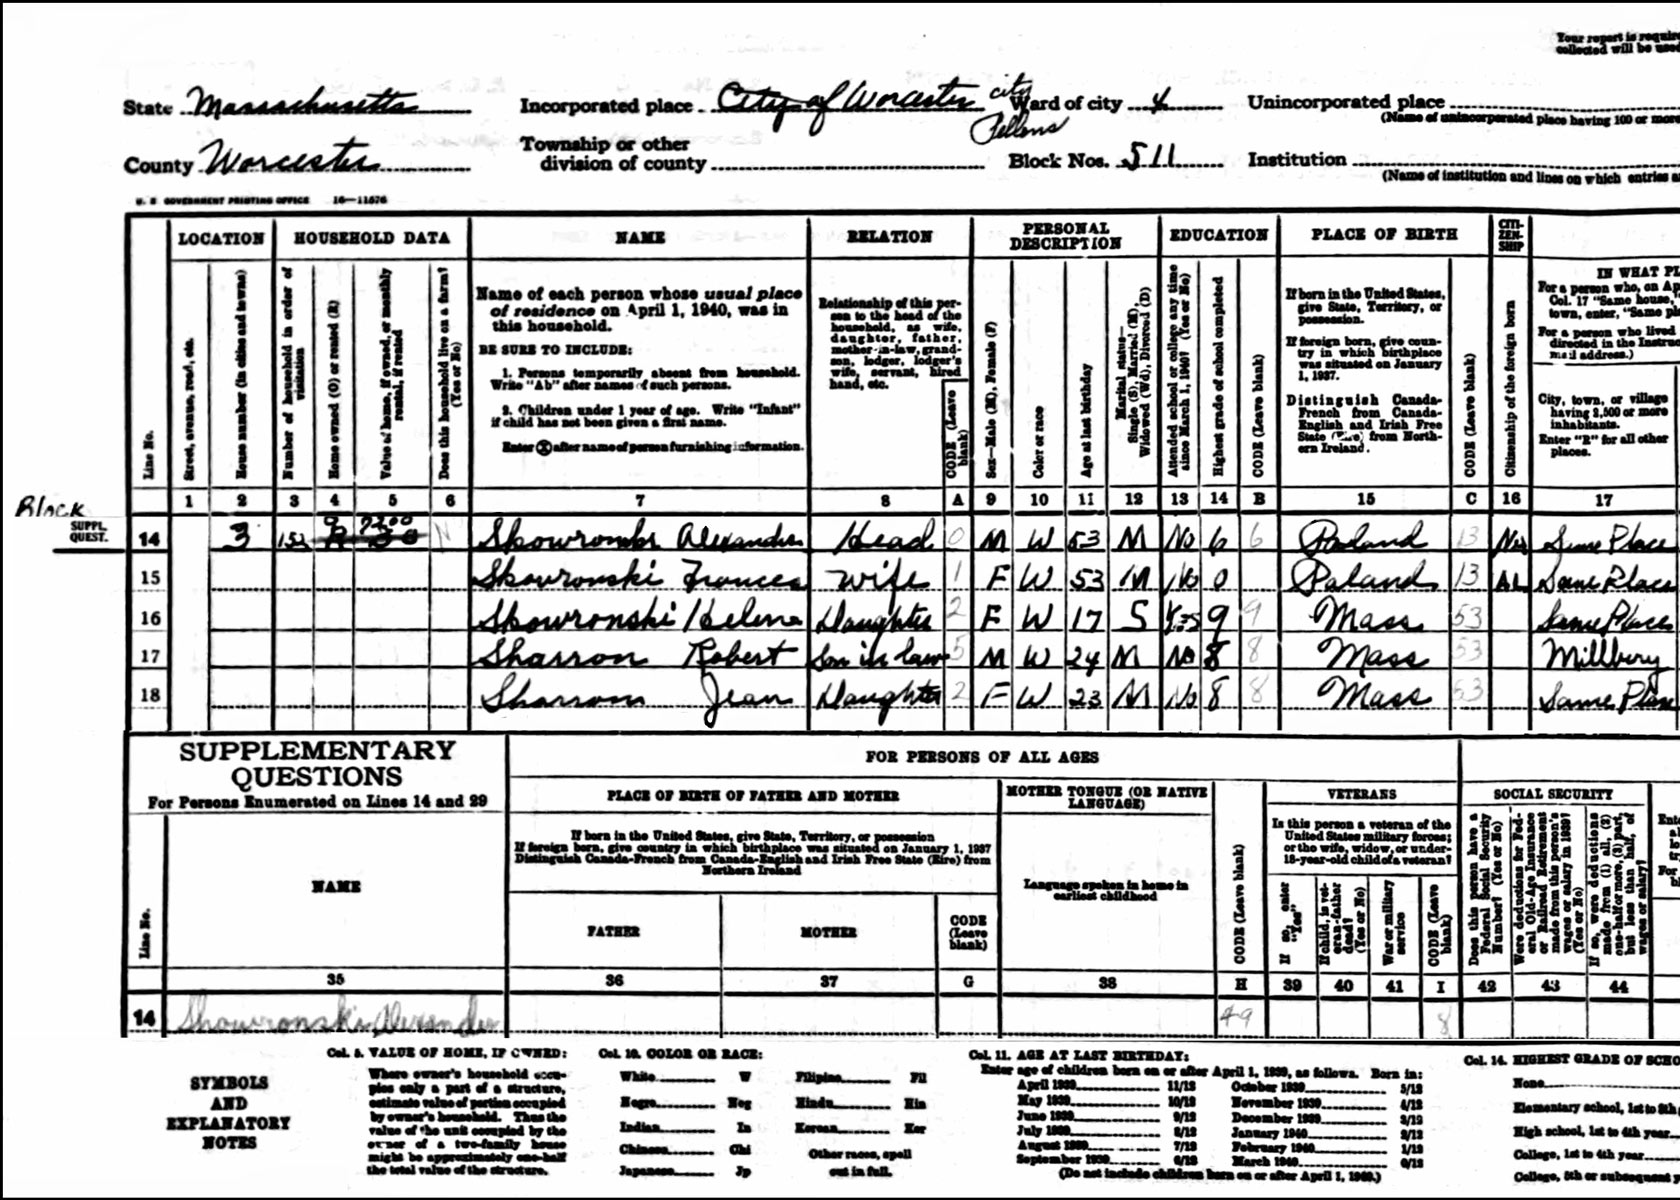 1940 US Federal Census Record for the Alexander Skowronski Family (Left)